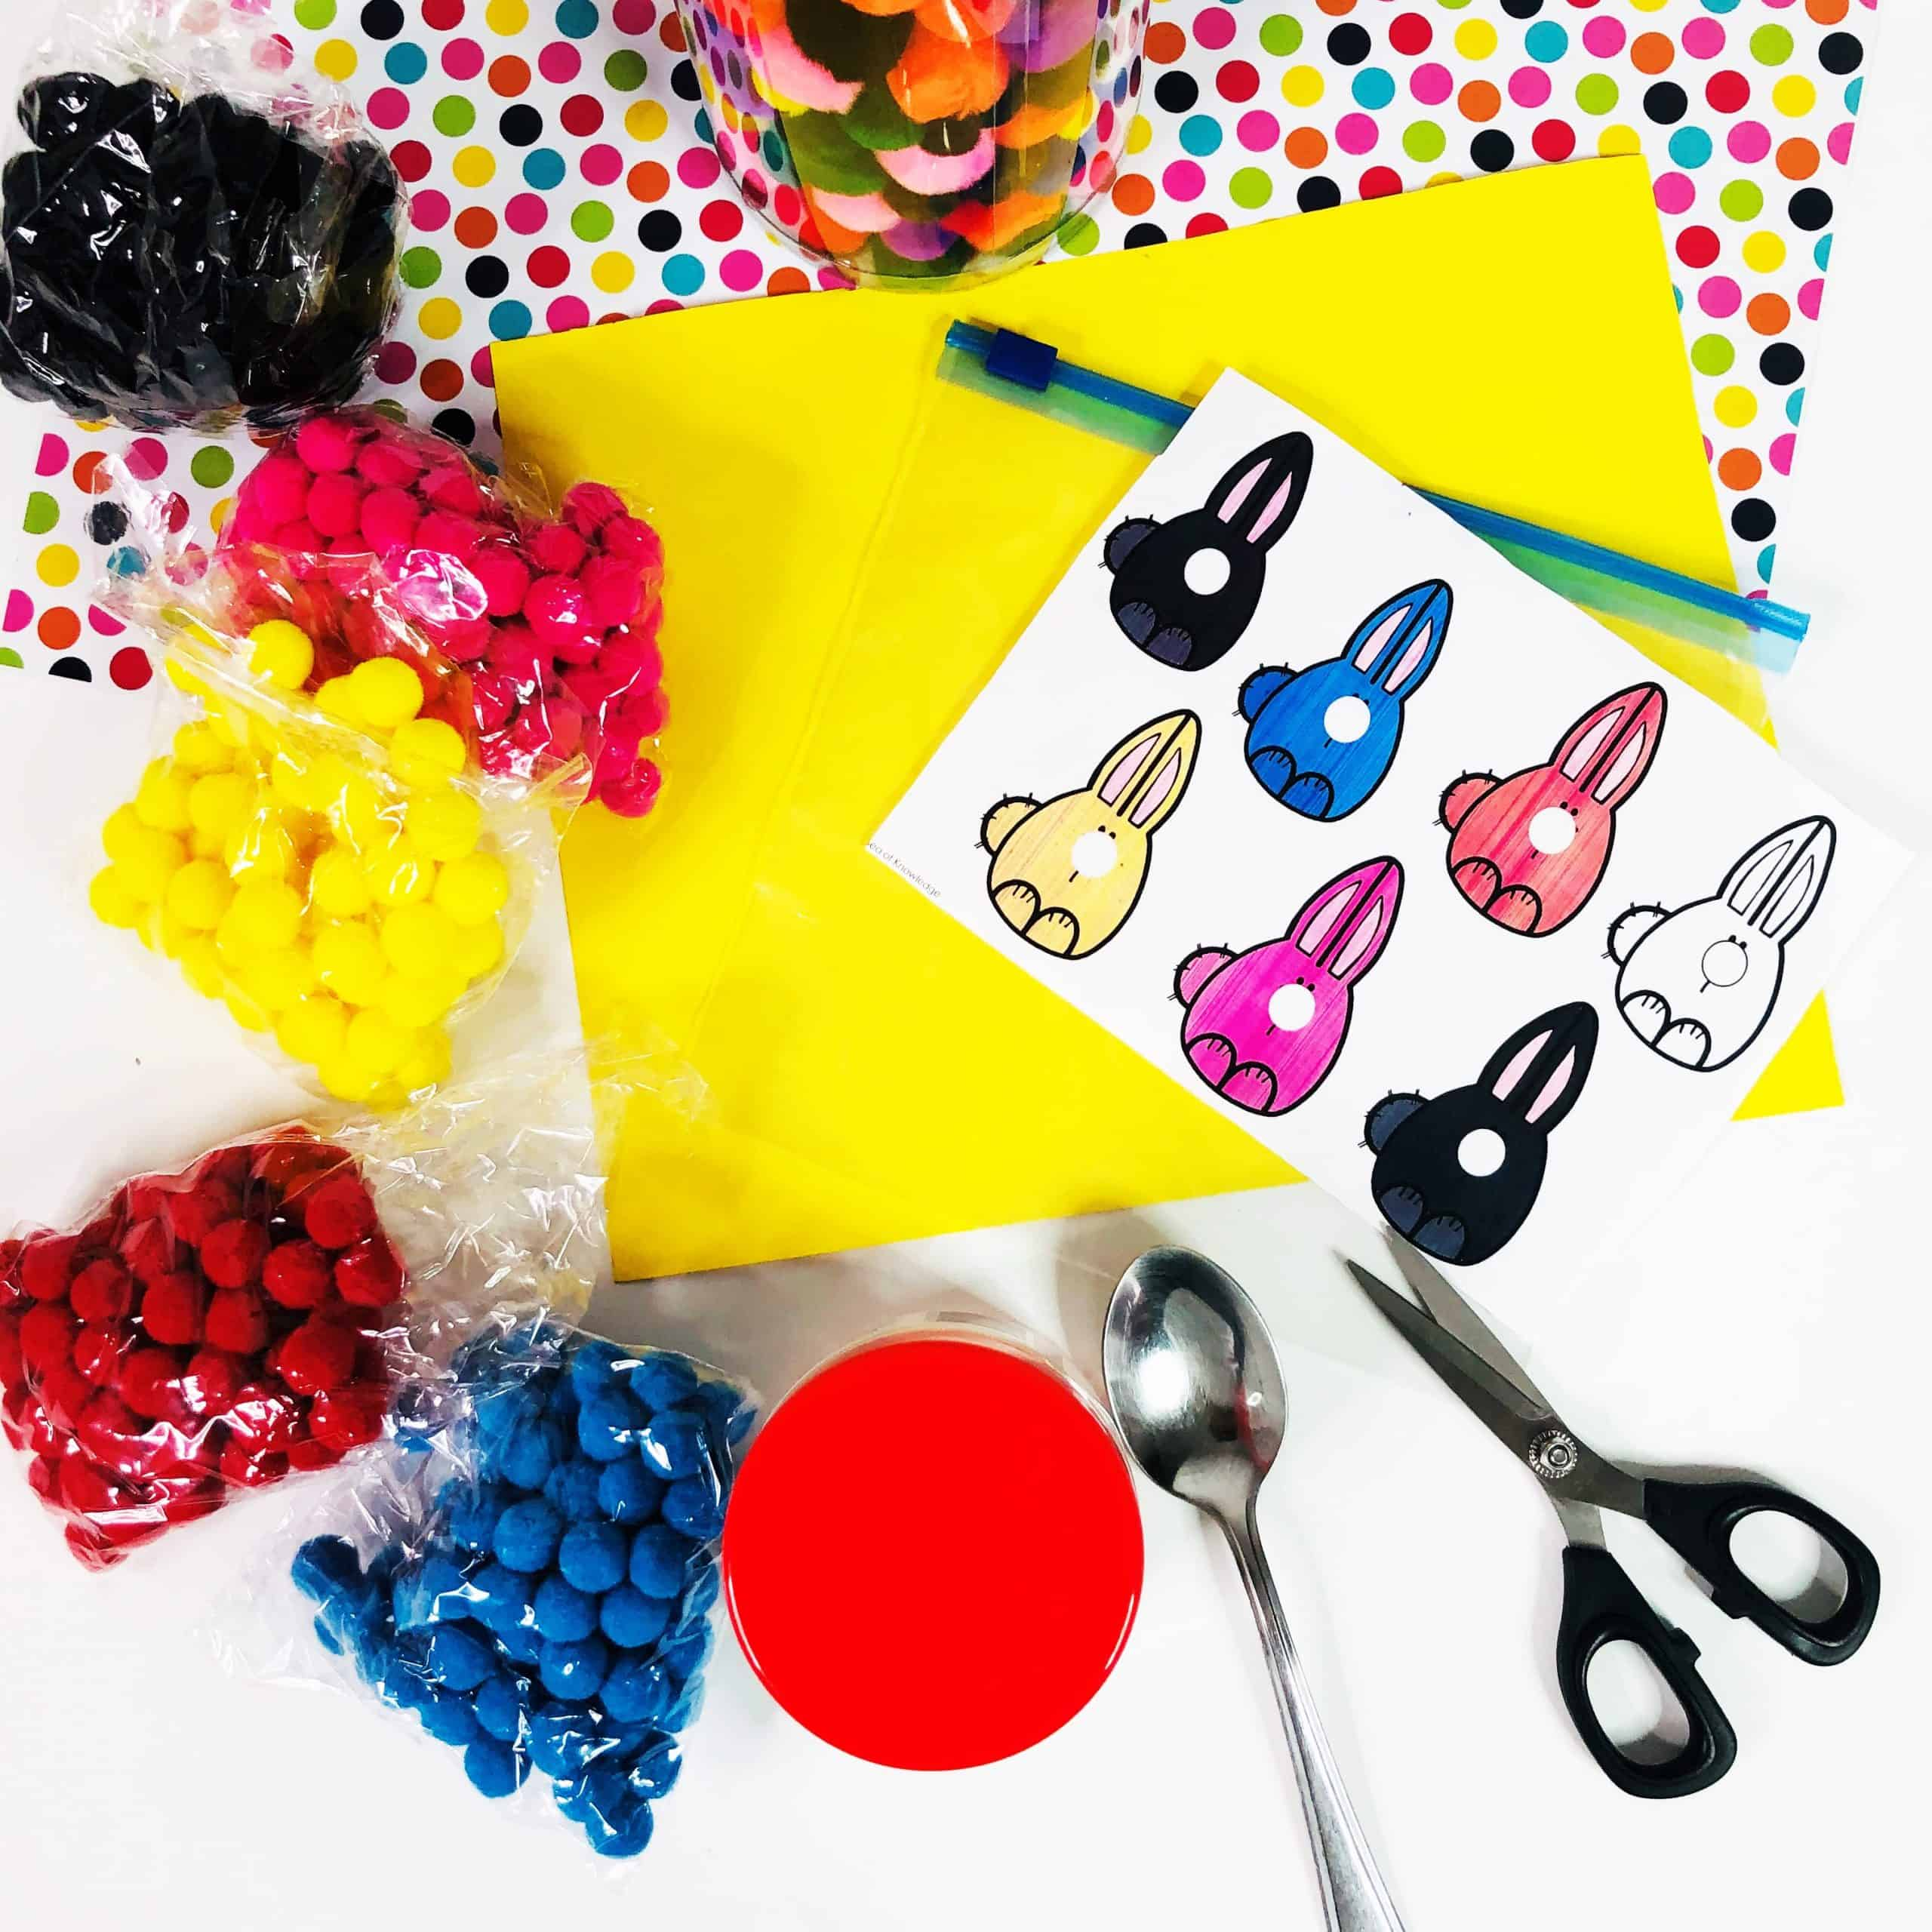 This fun little sensory bag was a hit with my little learners - and I'm sure it'll be the same for you! Bunny Noses Sensory Bag Colour Sorting is a great way to engage toddlers and preschoolers with the concept of sorting AND colour recognition.